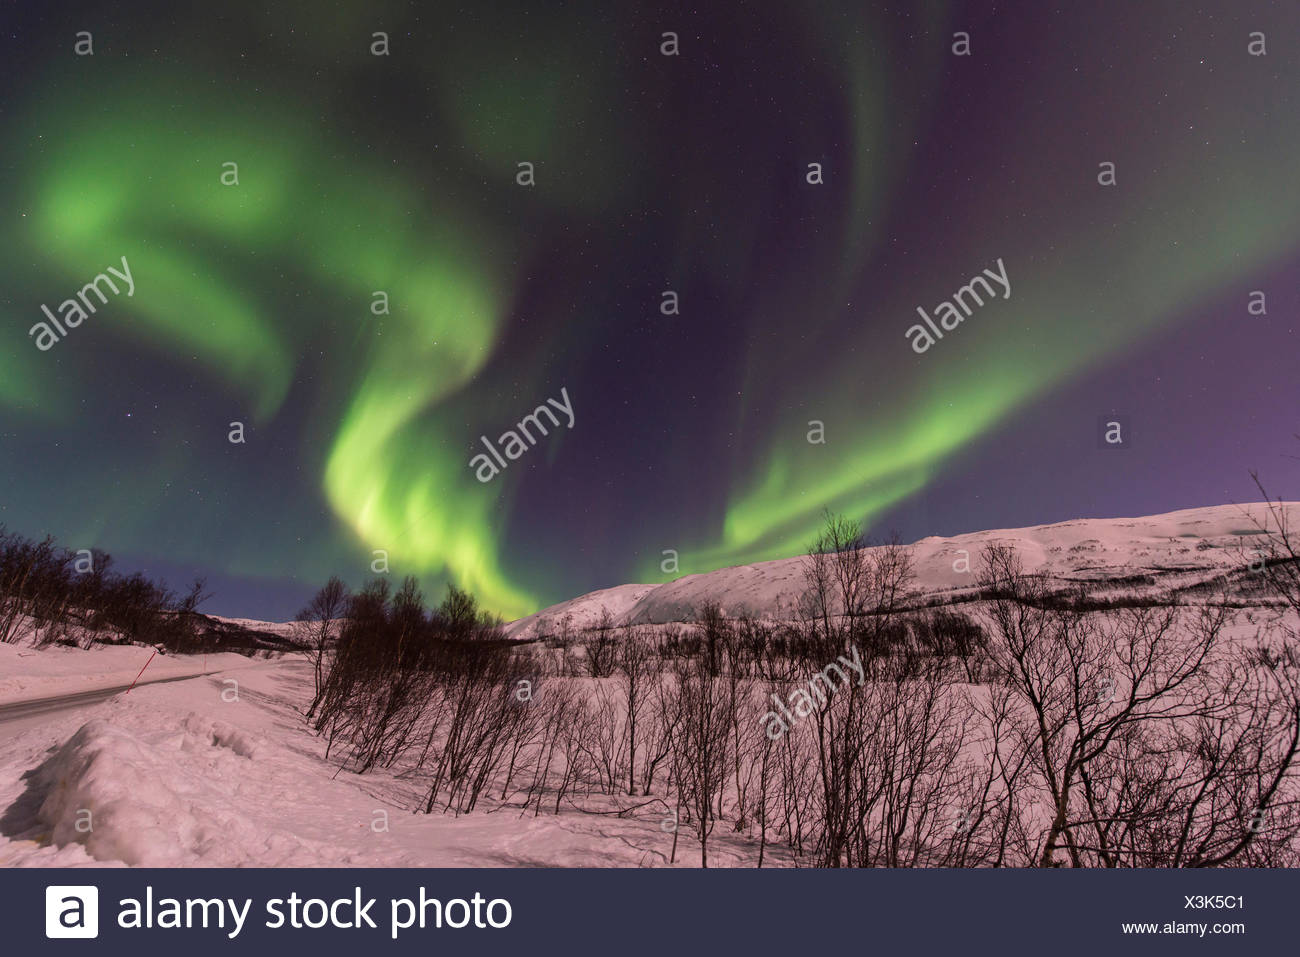 aurora eddy in winter landscape, Norway, Troms, Finnvikdalen - Stock Image